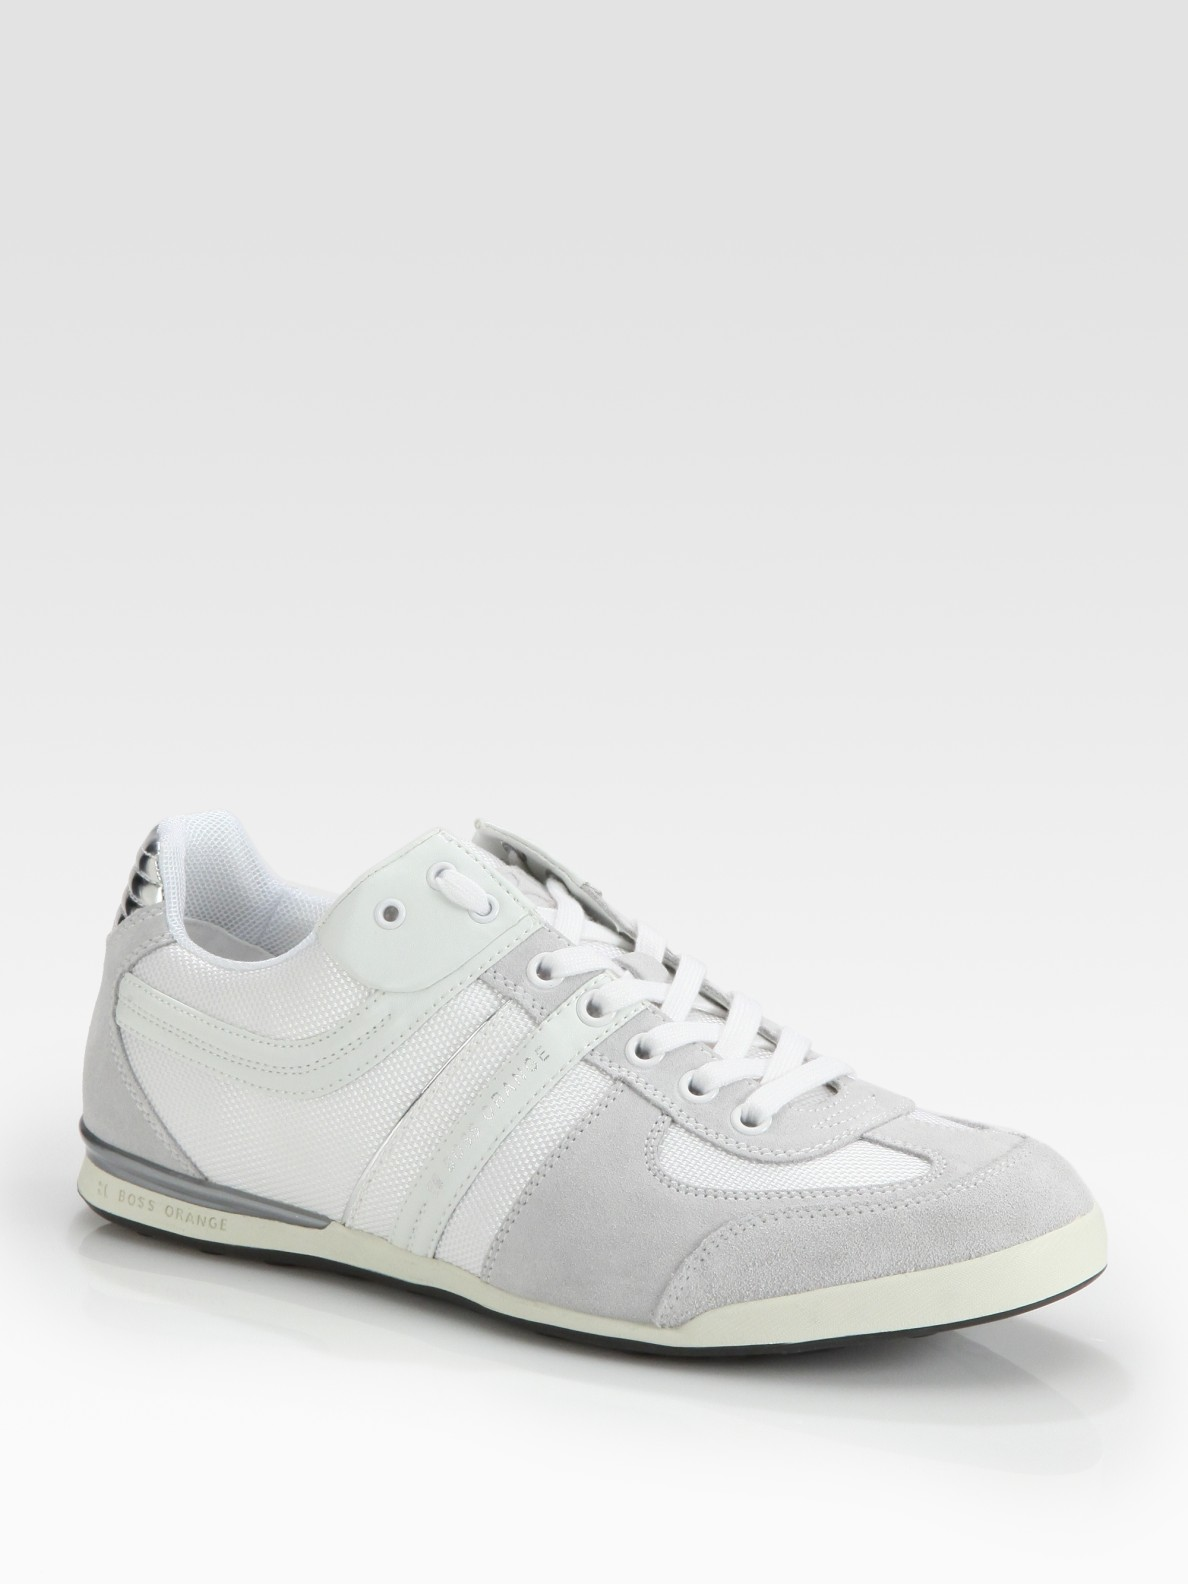 boss orange keelo i sneakers in white for men lyst. Black Bedroom Furniture Sets. Home Design Ideas